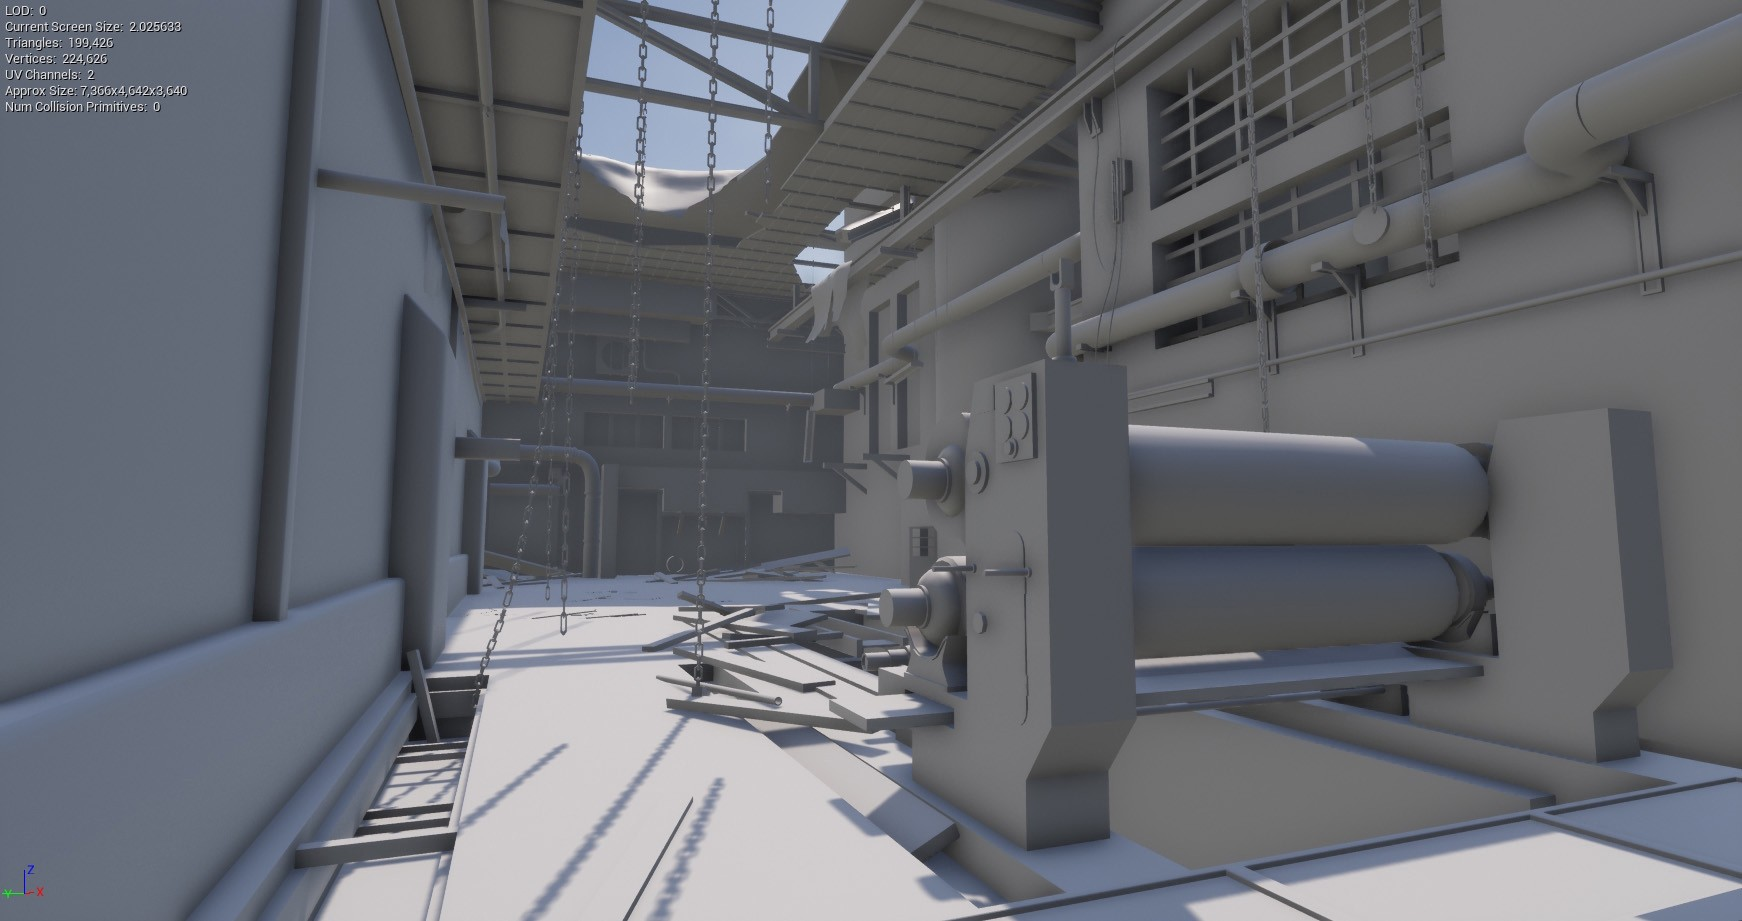 Building Artistic Environments with Scanned Assets - 80Level